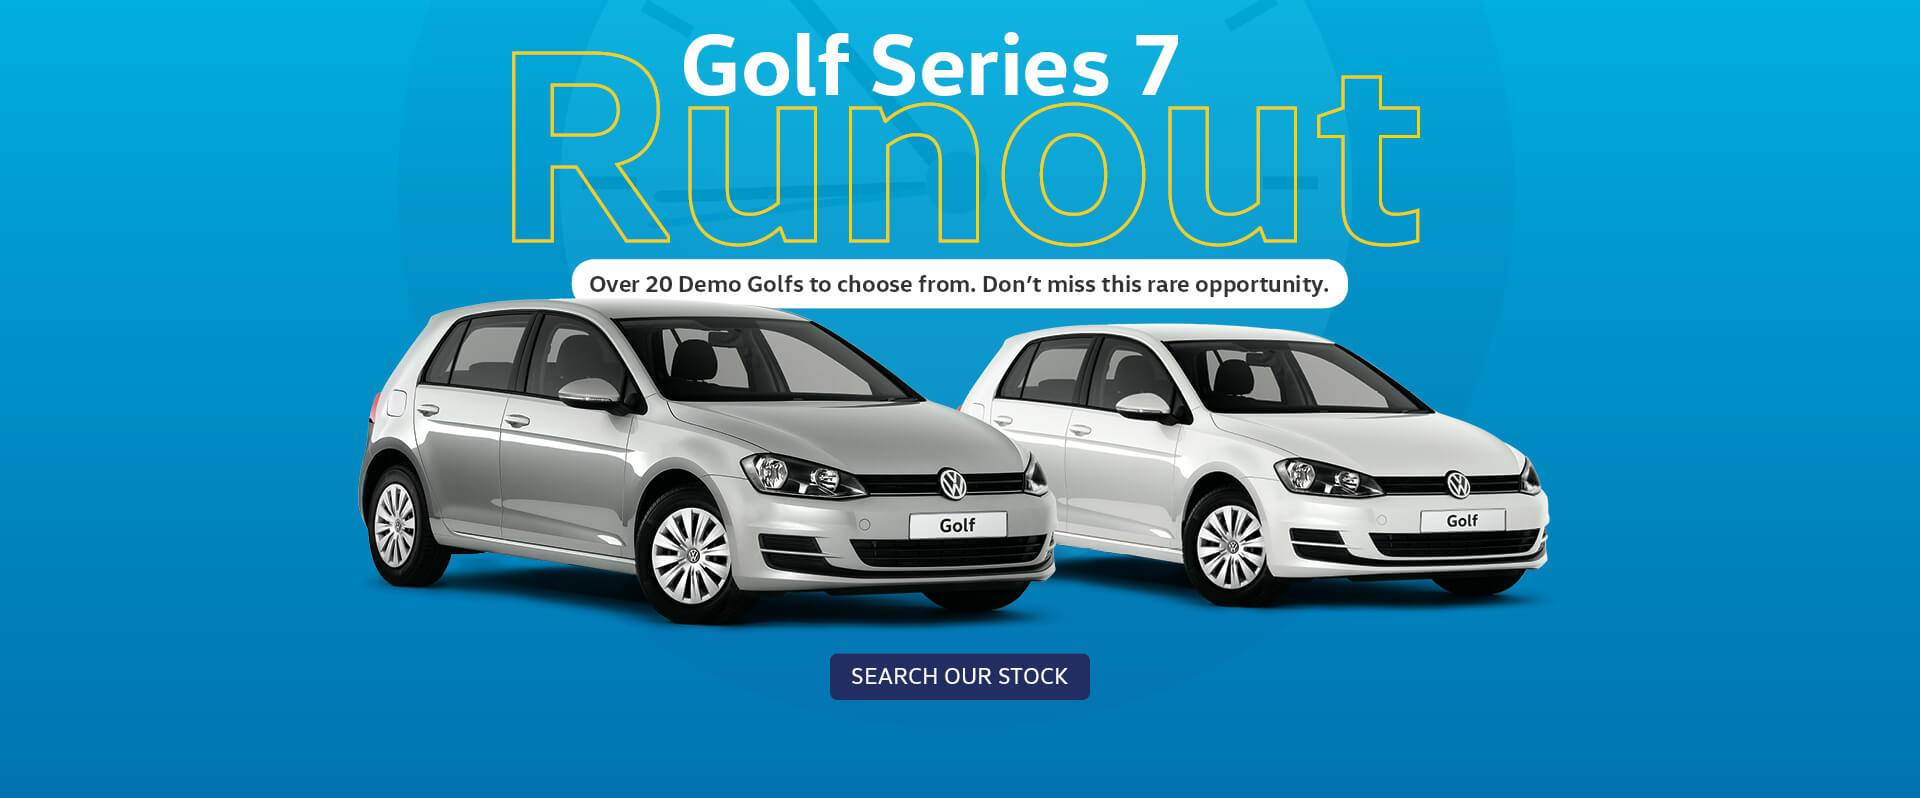 Werribee VW- Golf Demo Runout